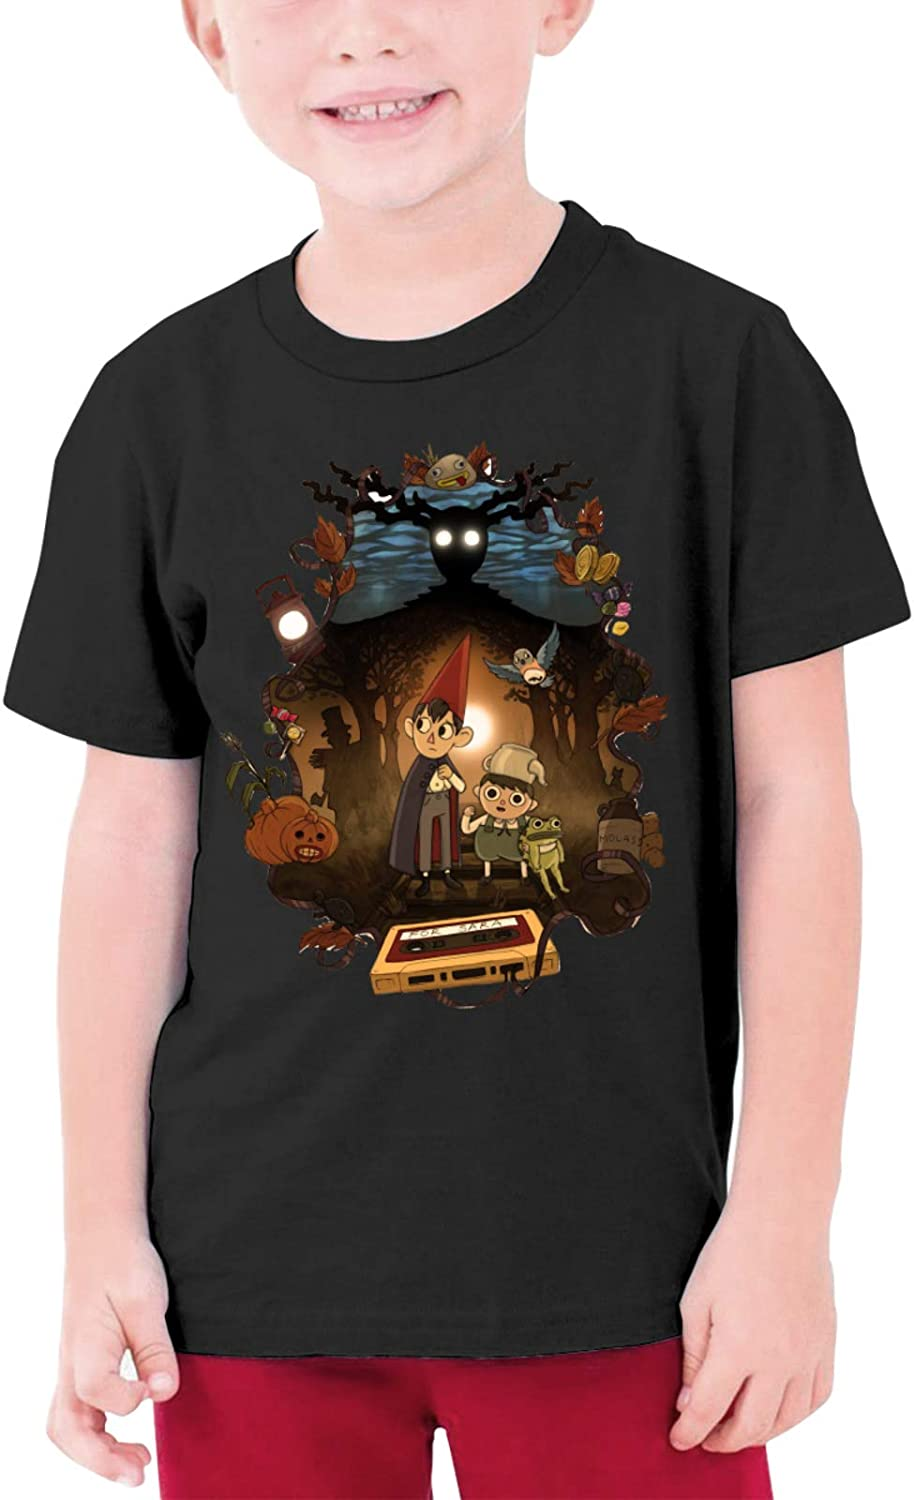 Top 9 Over The Garden Wall Tees